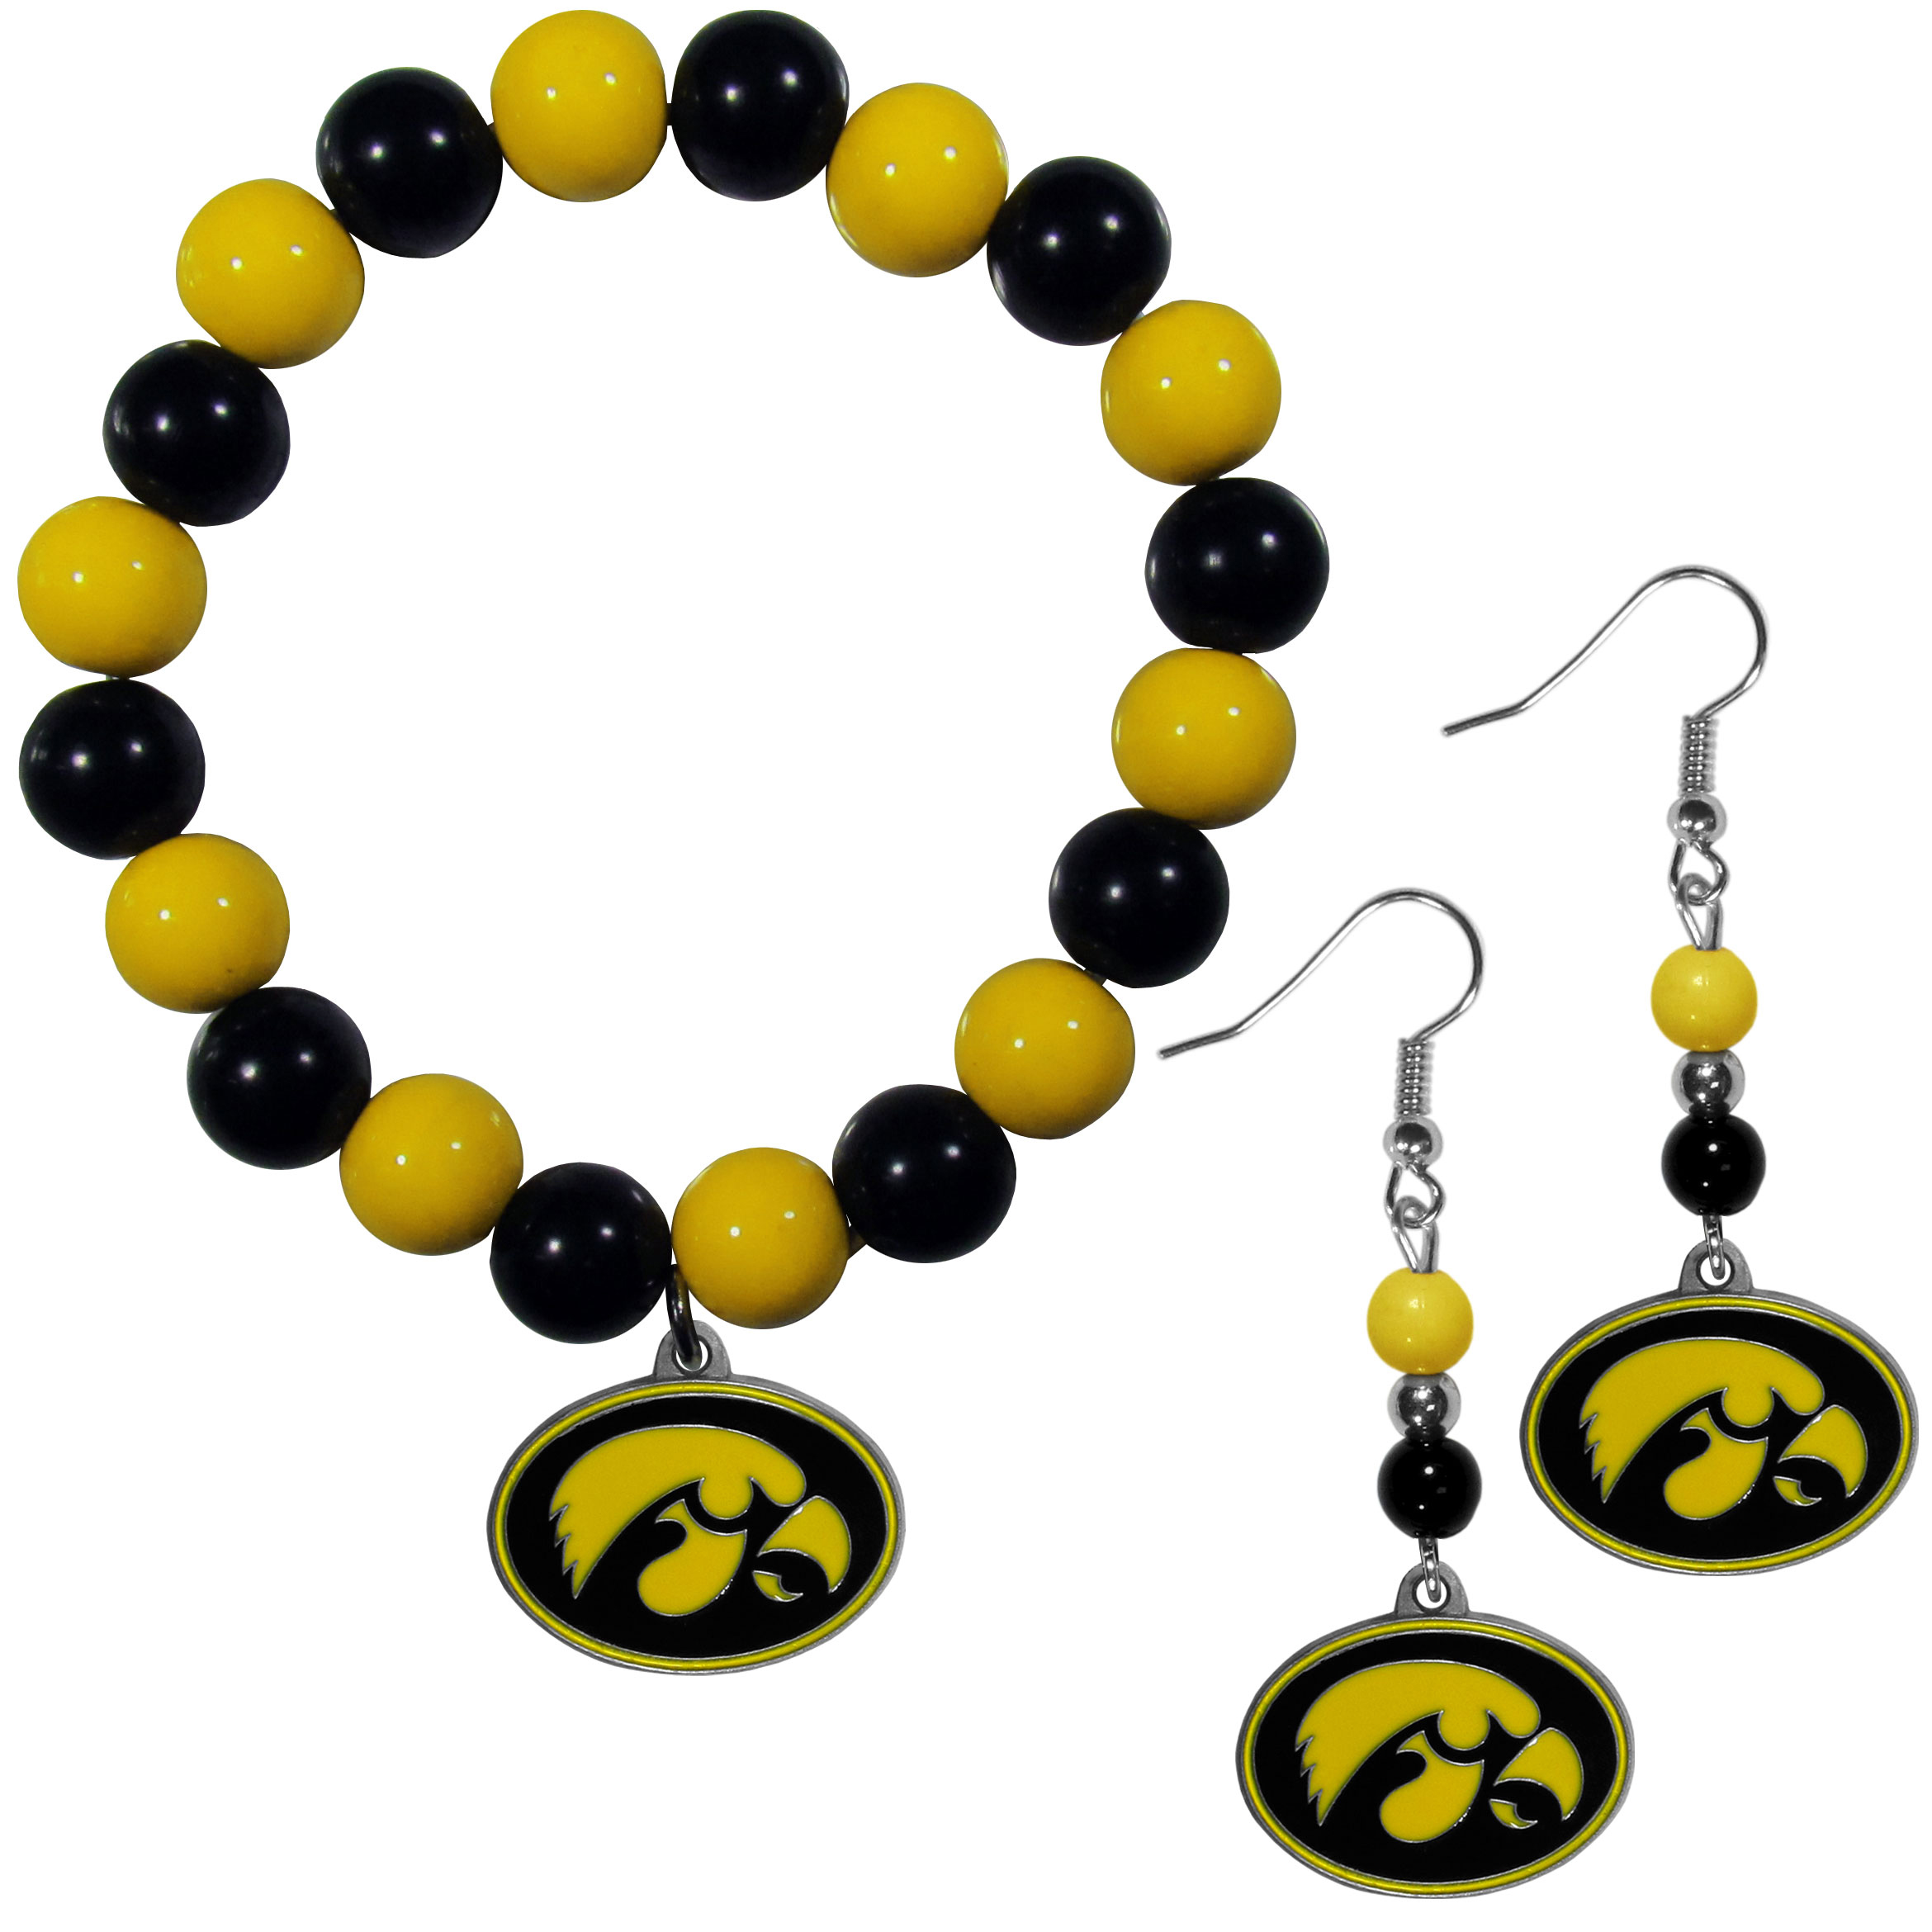 Iowa Hawkeyes Fan Bead Earrings and Bracelet Set - This fun and colorful Iowa Hawkeyes fan bead jewelry set is fun and casual with eye-catching beads in bright team colors. The fashionable dangle earrings feature a team colored beads that drop down to a carved and enameled charm. The stretch bracelet has larger matching beads that make a striking statement and have a matching team charm. These sassy yet sporty jewelry pieces make a perfect gift for any female fan. Spice up your game-day outfit with these fun colorful earrings and bracelet that are also cute enough for any day.